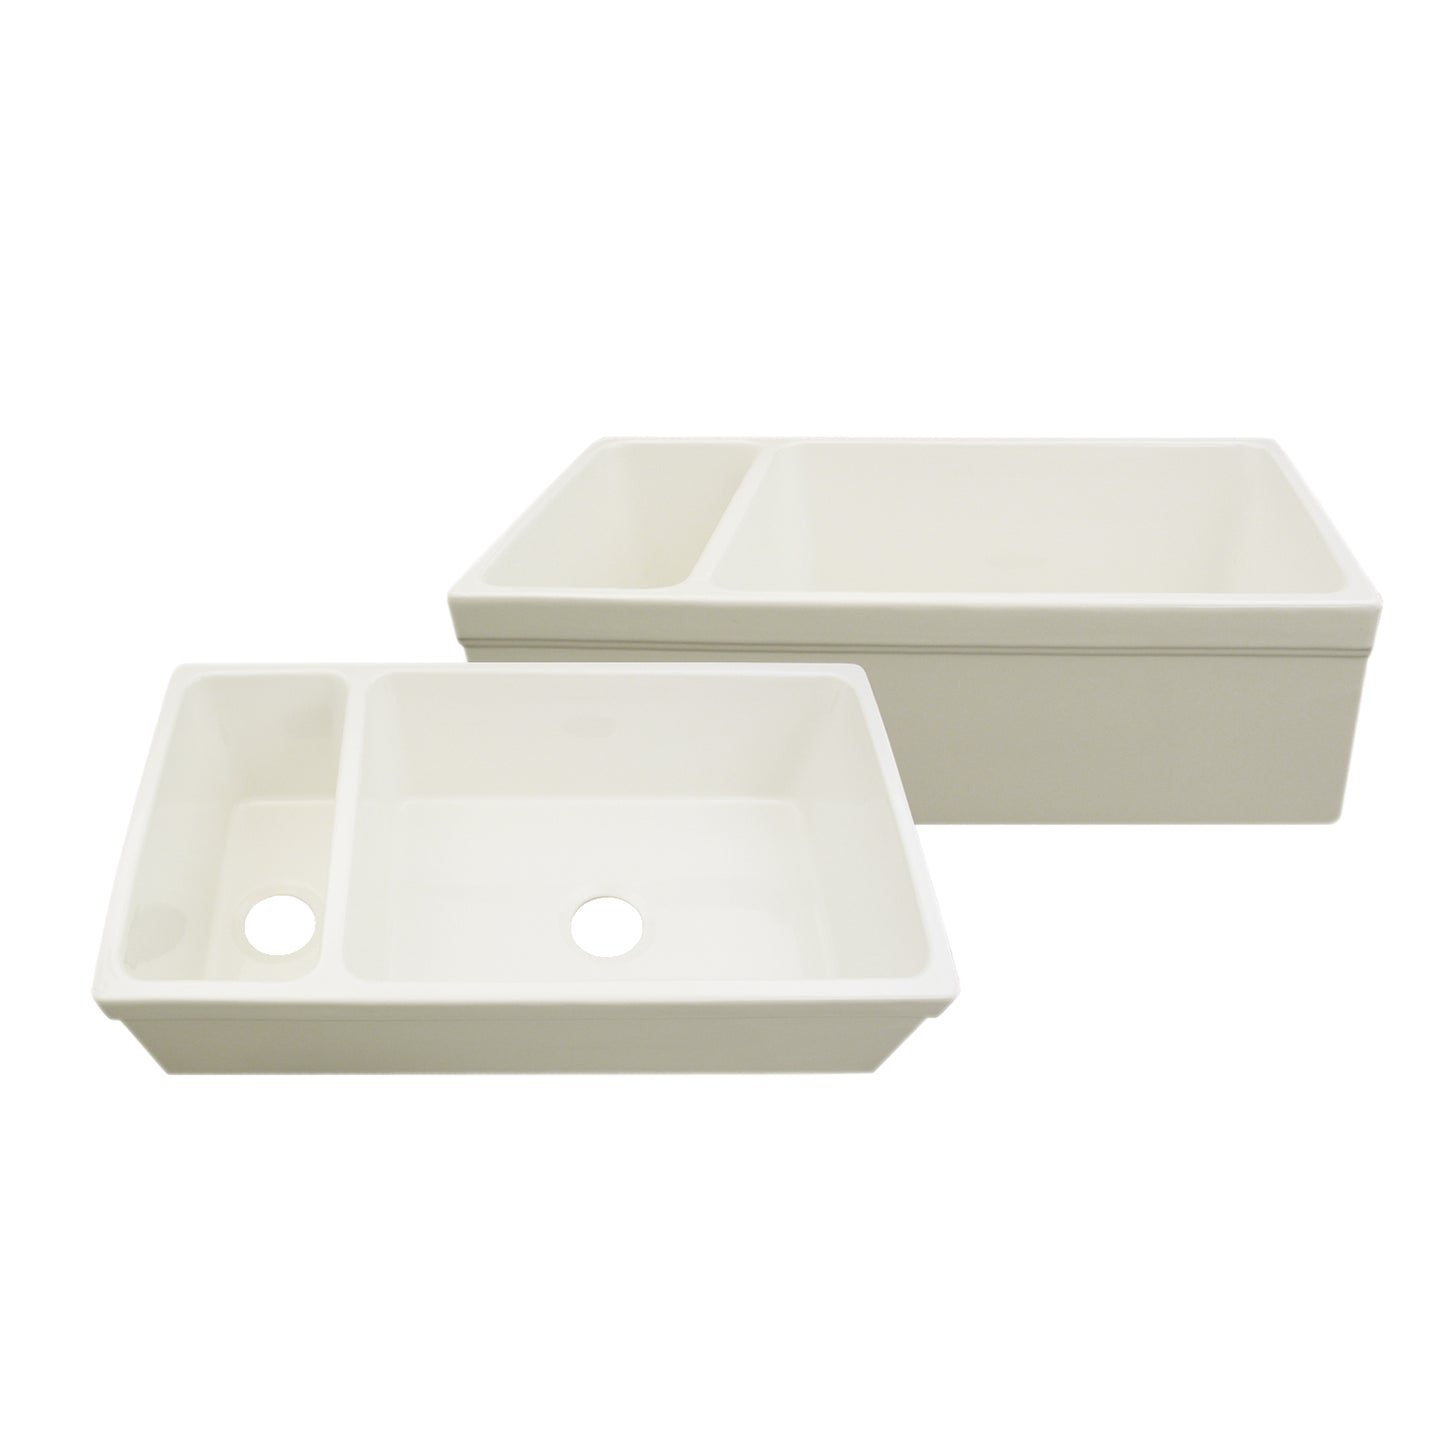 Whitehaus Farmhaus Fireclay Quatro Alcove Large Reversible Sink and Small Bowl with Decorative 2 ½